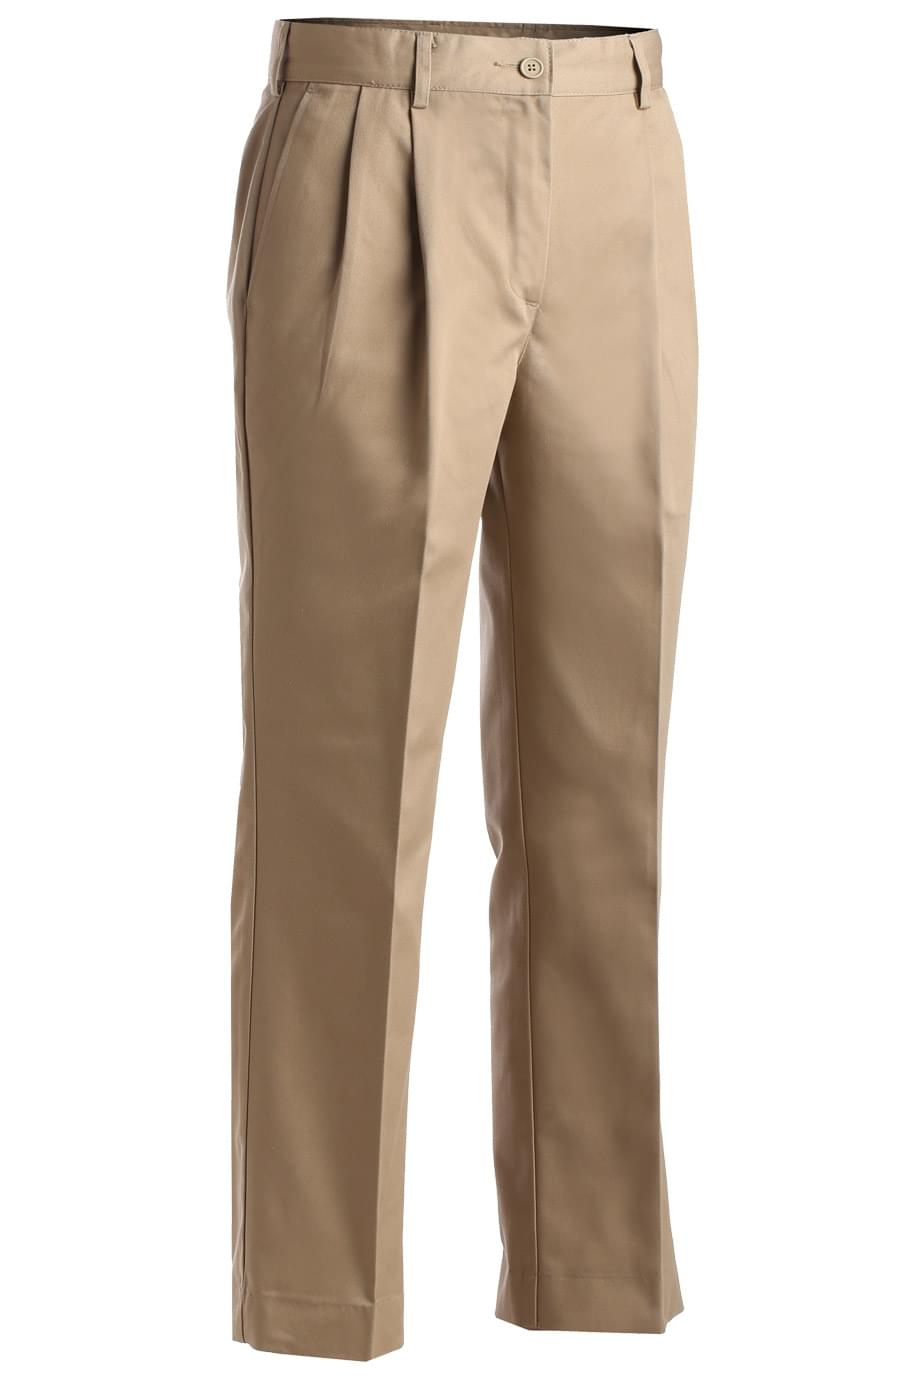 LADIES' ALL COTTON PLEATED PANT